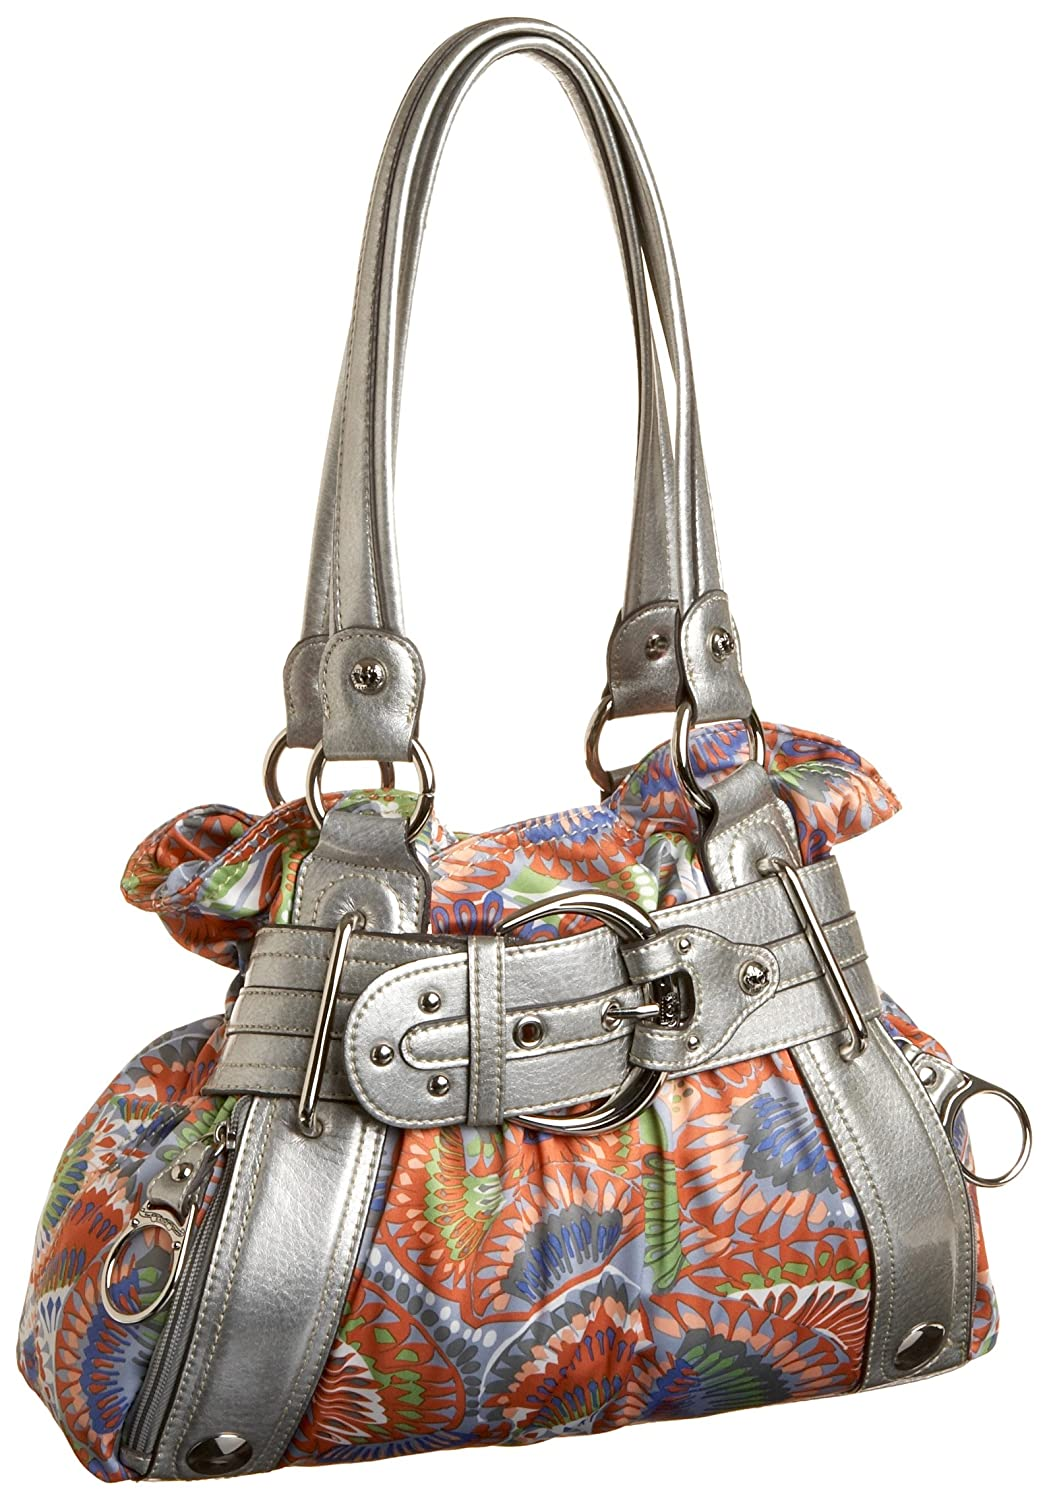 KATHY Van Zeeland Strap Up Belted Shopper from endless.com